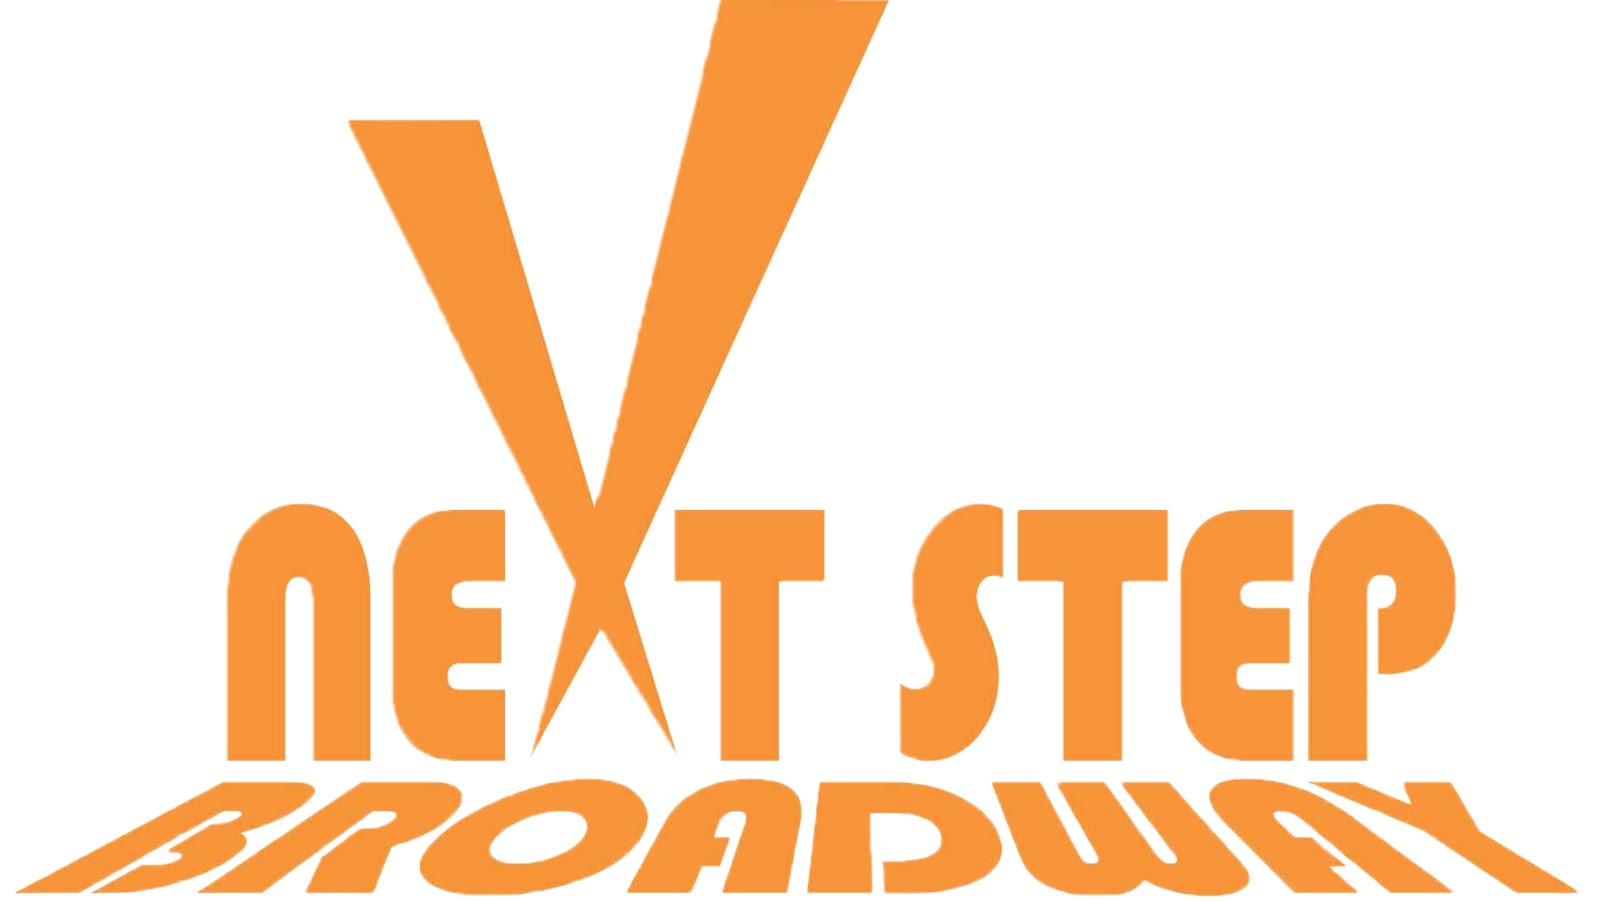 NSB_orange_logo.jpg